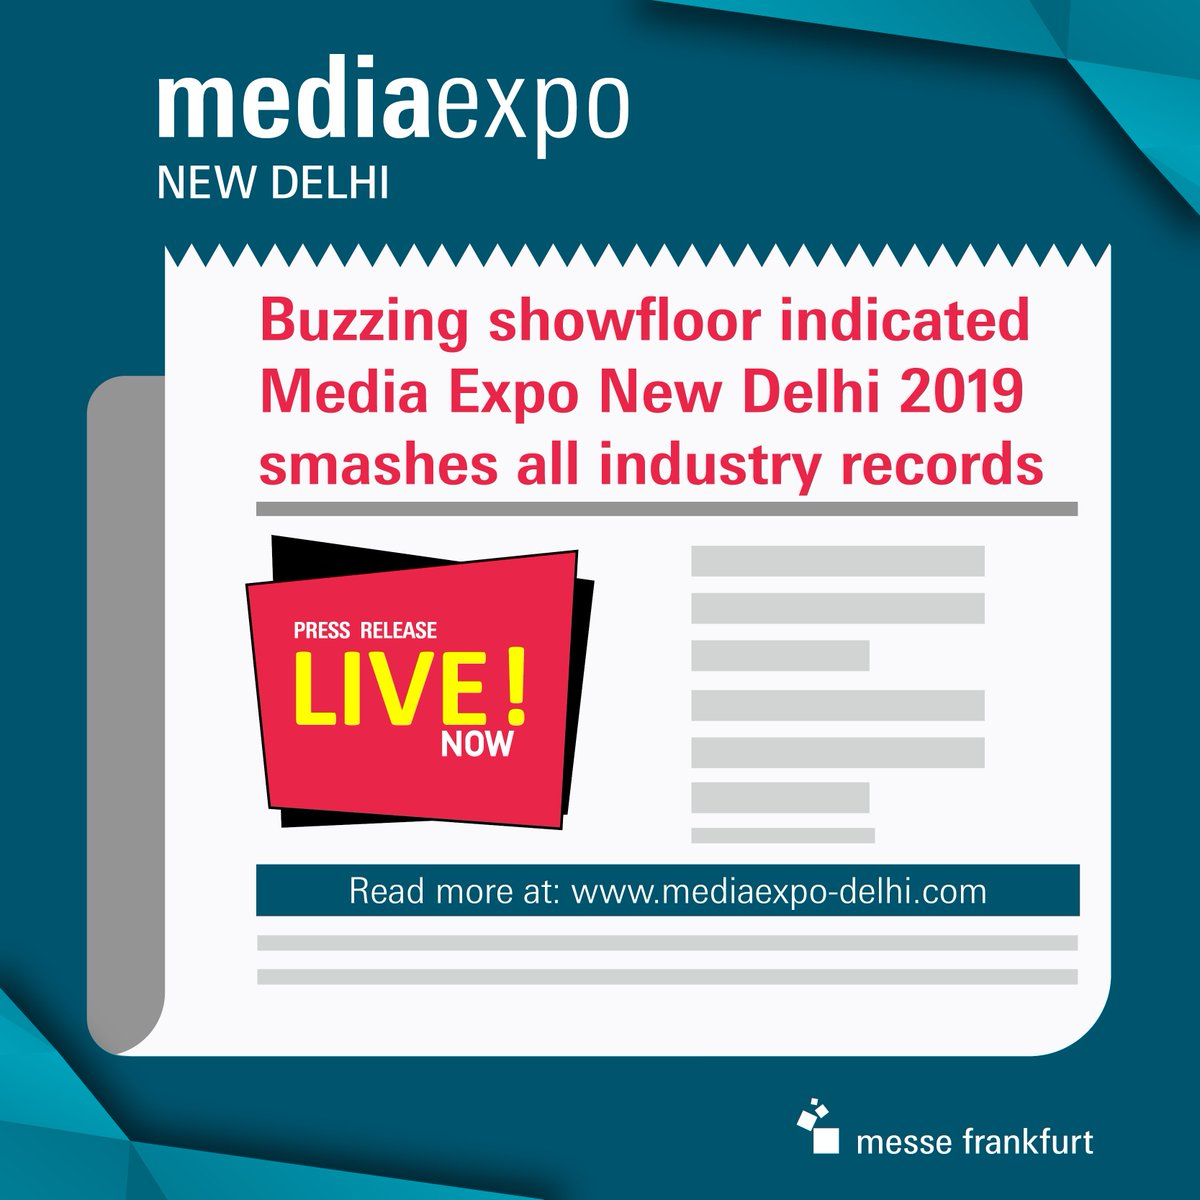 With a staggering 17,711 business visitors packing the showfloor, Media Expo New Delhi 2019 broke all records to be the number one choice for networking and sourcing advertising applications! Read our press release section :  https:// bit.ly/2knc7eS      #MediaExpo #Tradefair<br>http://pic.twitter.com/K89HTJSPGt